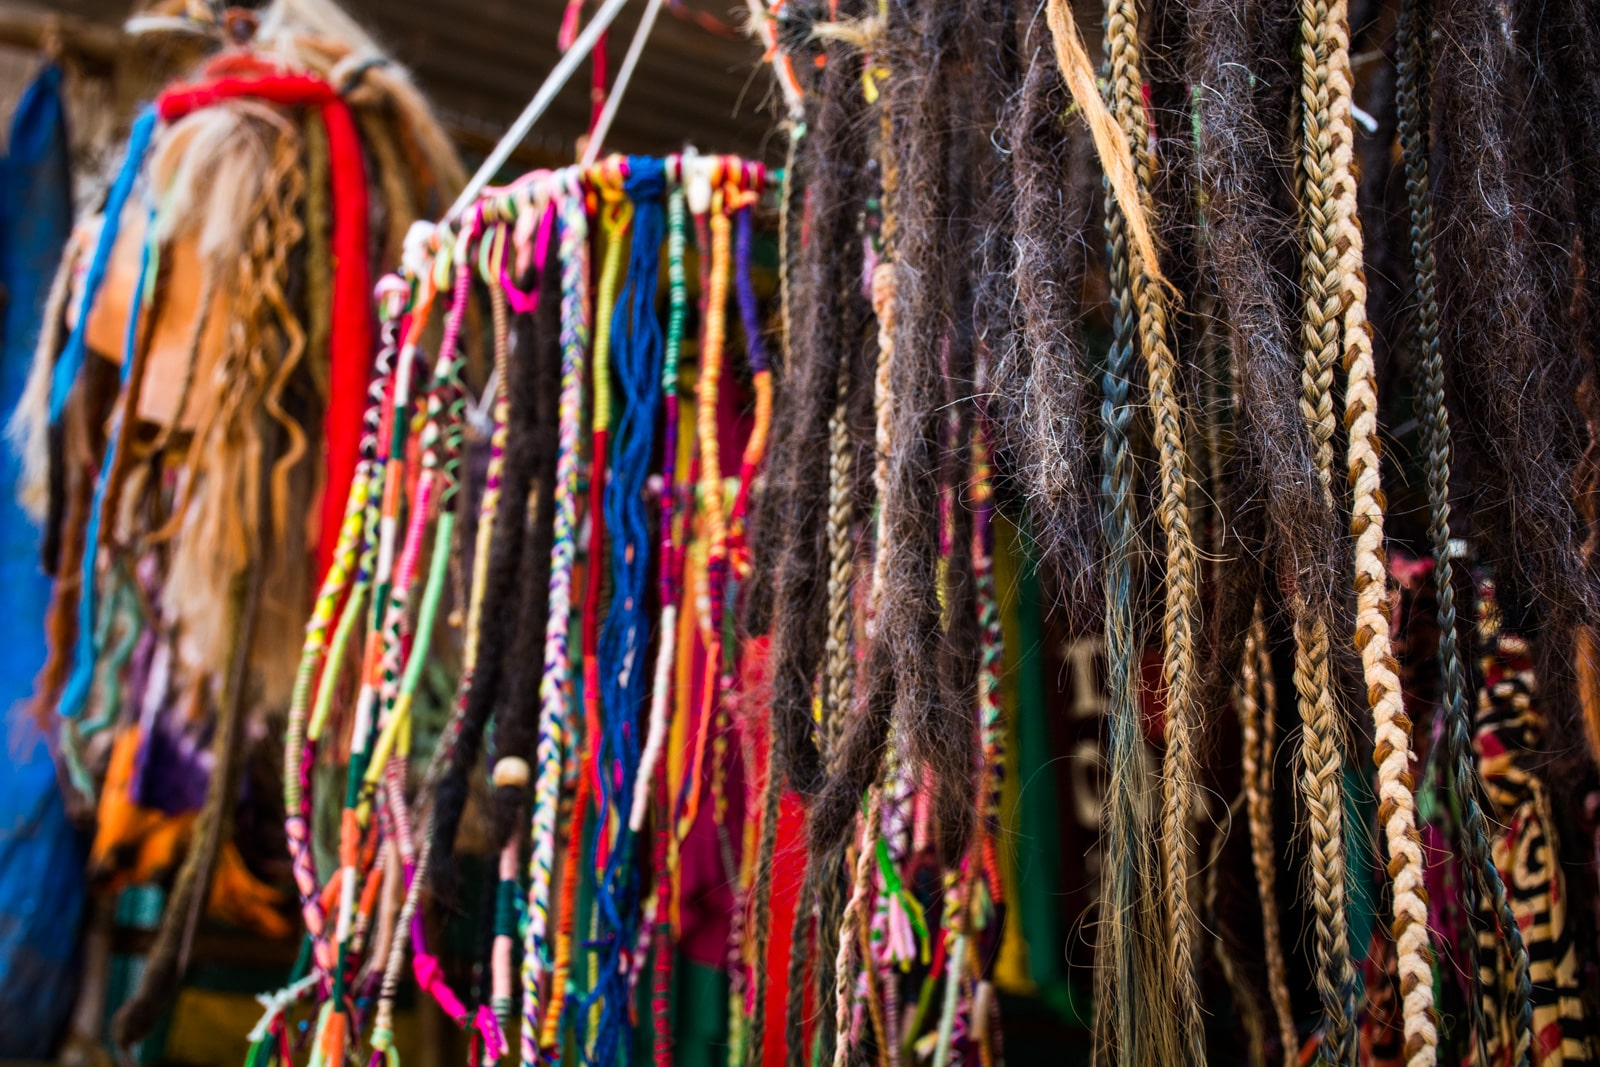 Guide to weed in India - Dreads for sale in Arambol beach, Goa - Lost With Purpose travel blog